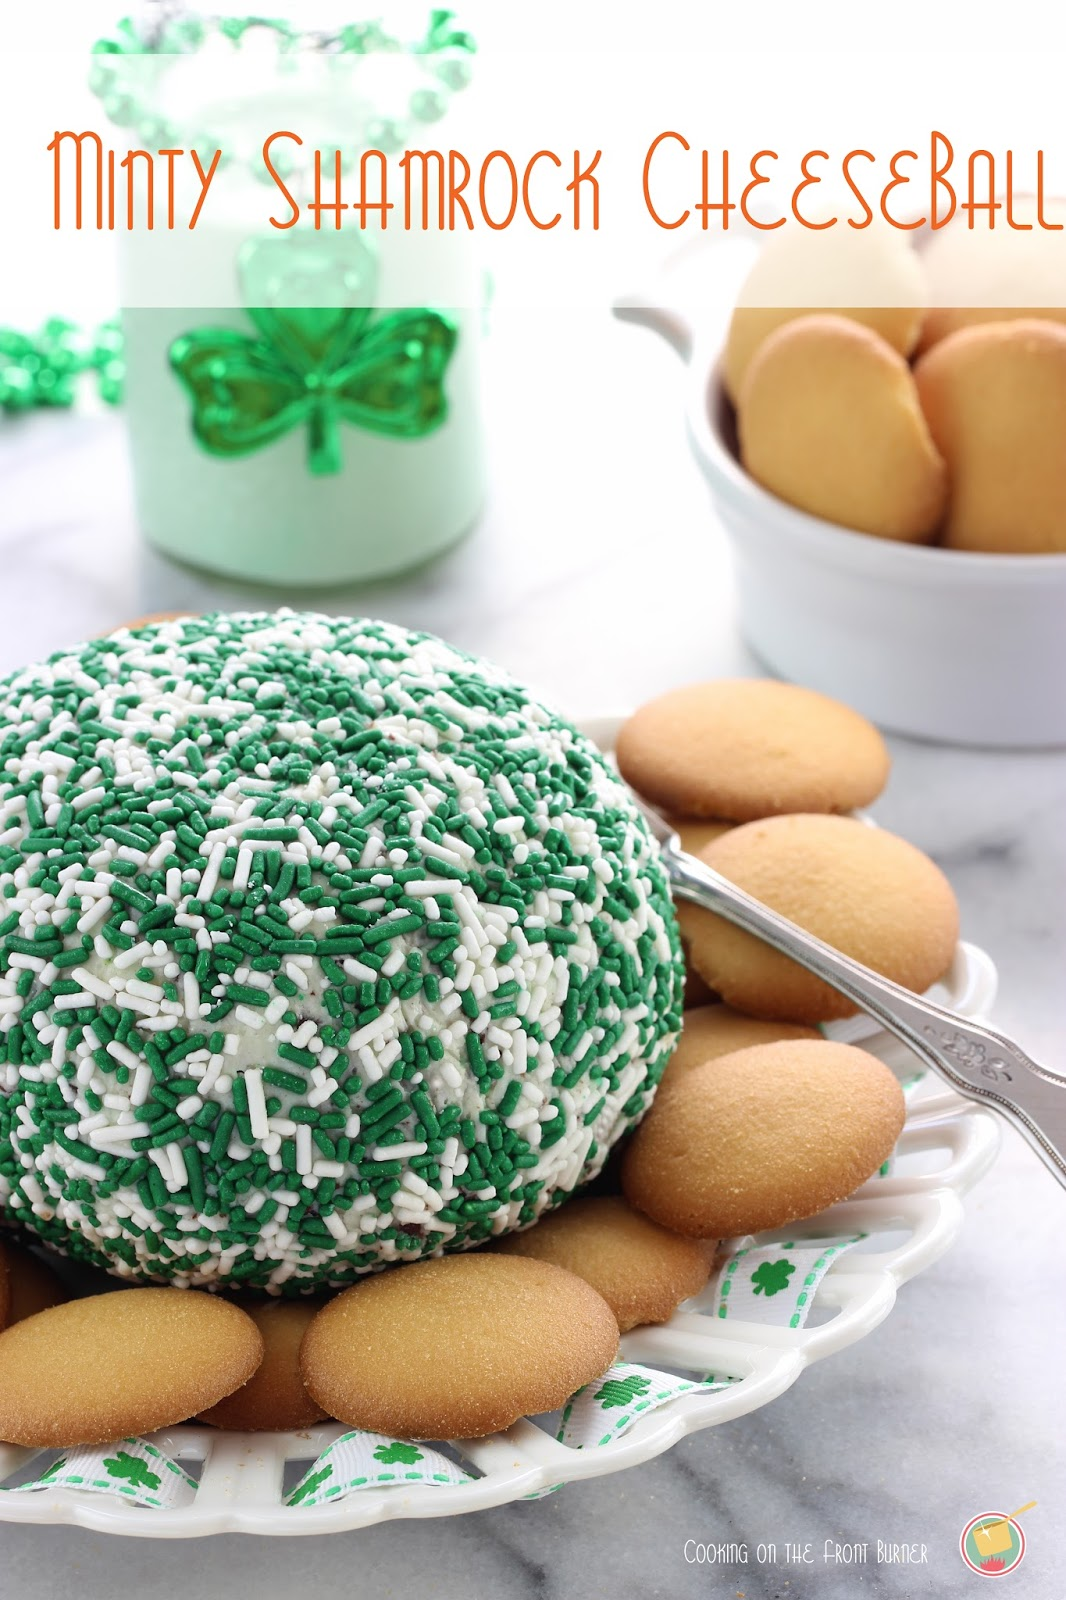 St. Patrick's Day sweet cheeseball recipe. Perfect for an afternoon celebration.